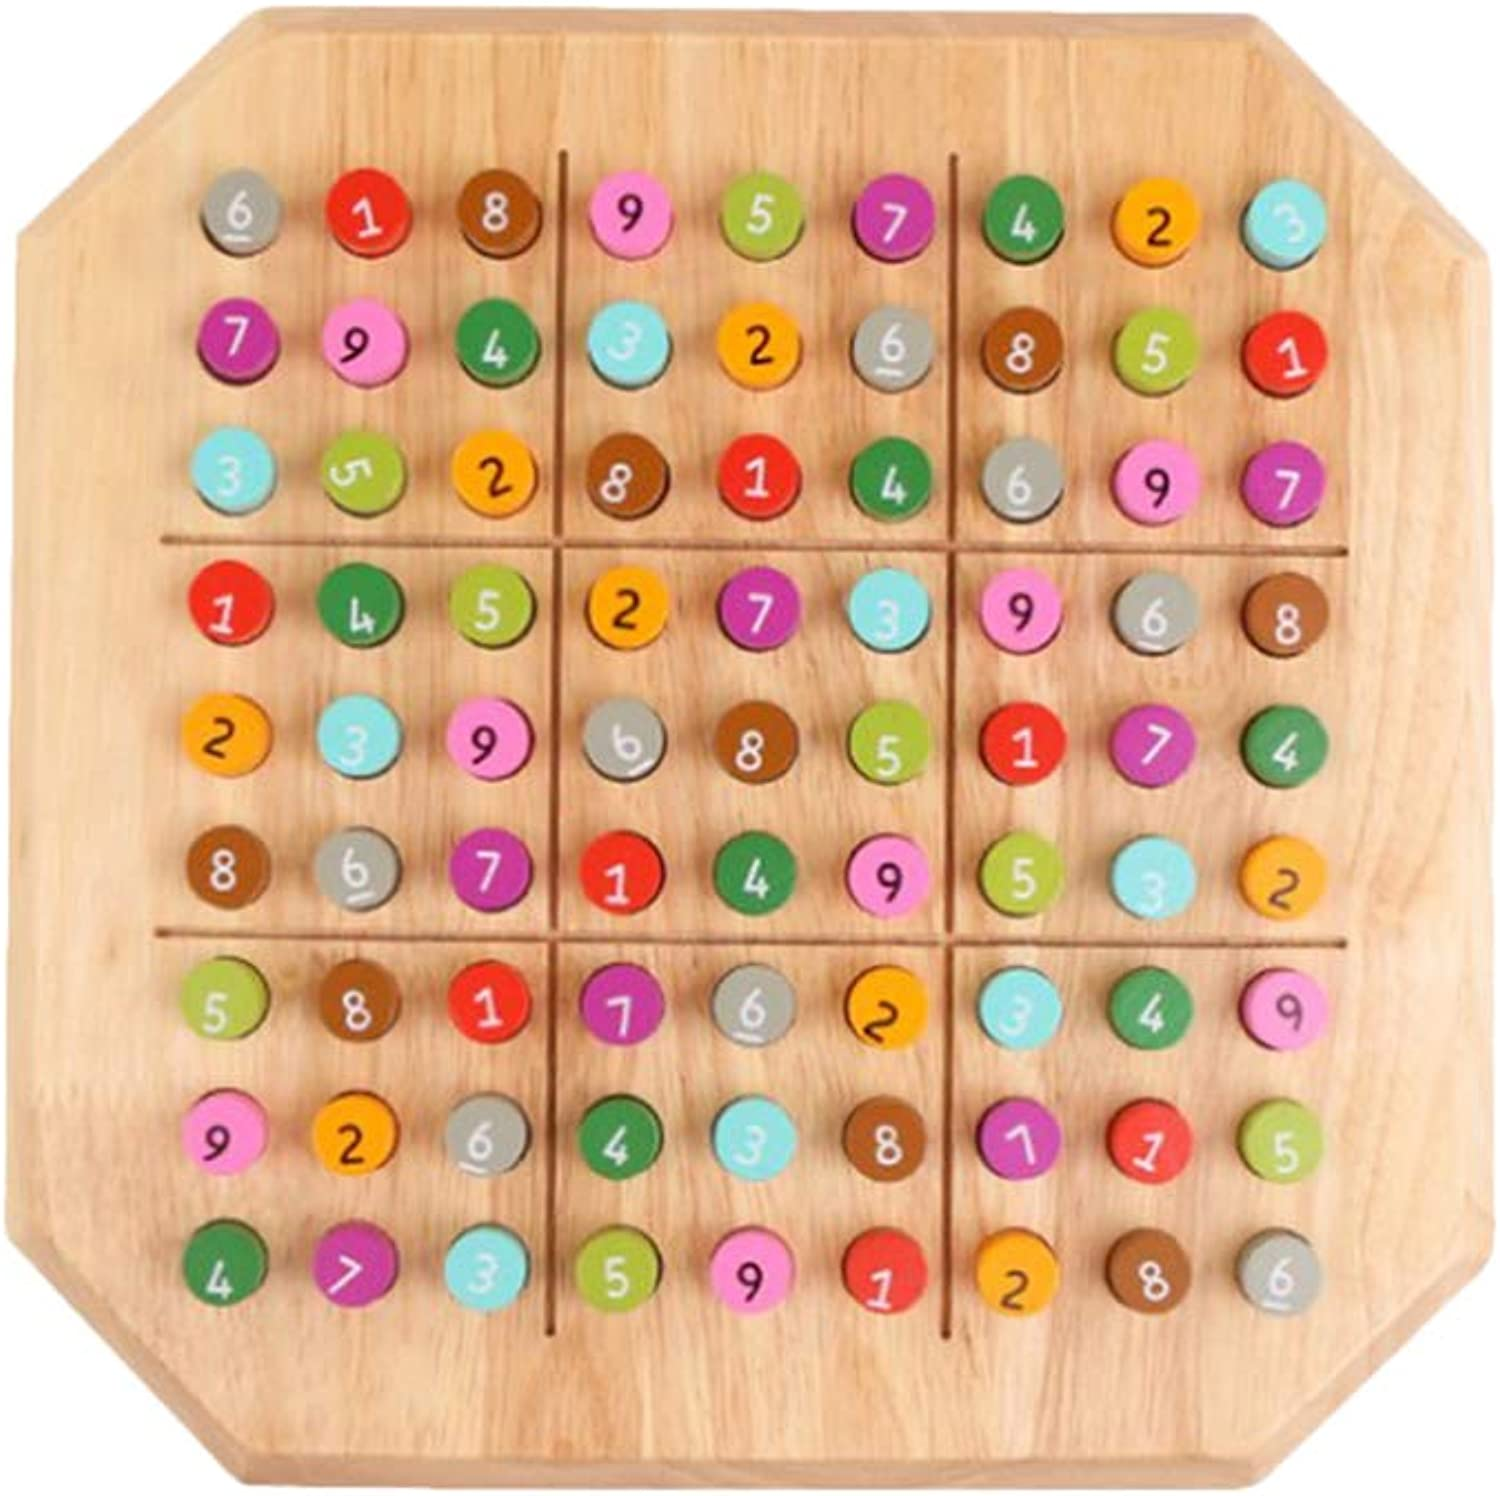 Wooden Kids Educational Playing Board Game Puzzles Development Logical Reasoning Training Classic Puzzle Table Toy